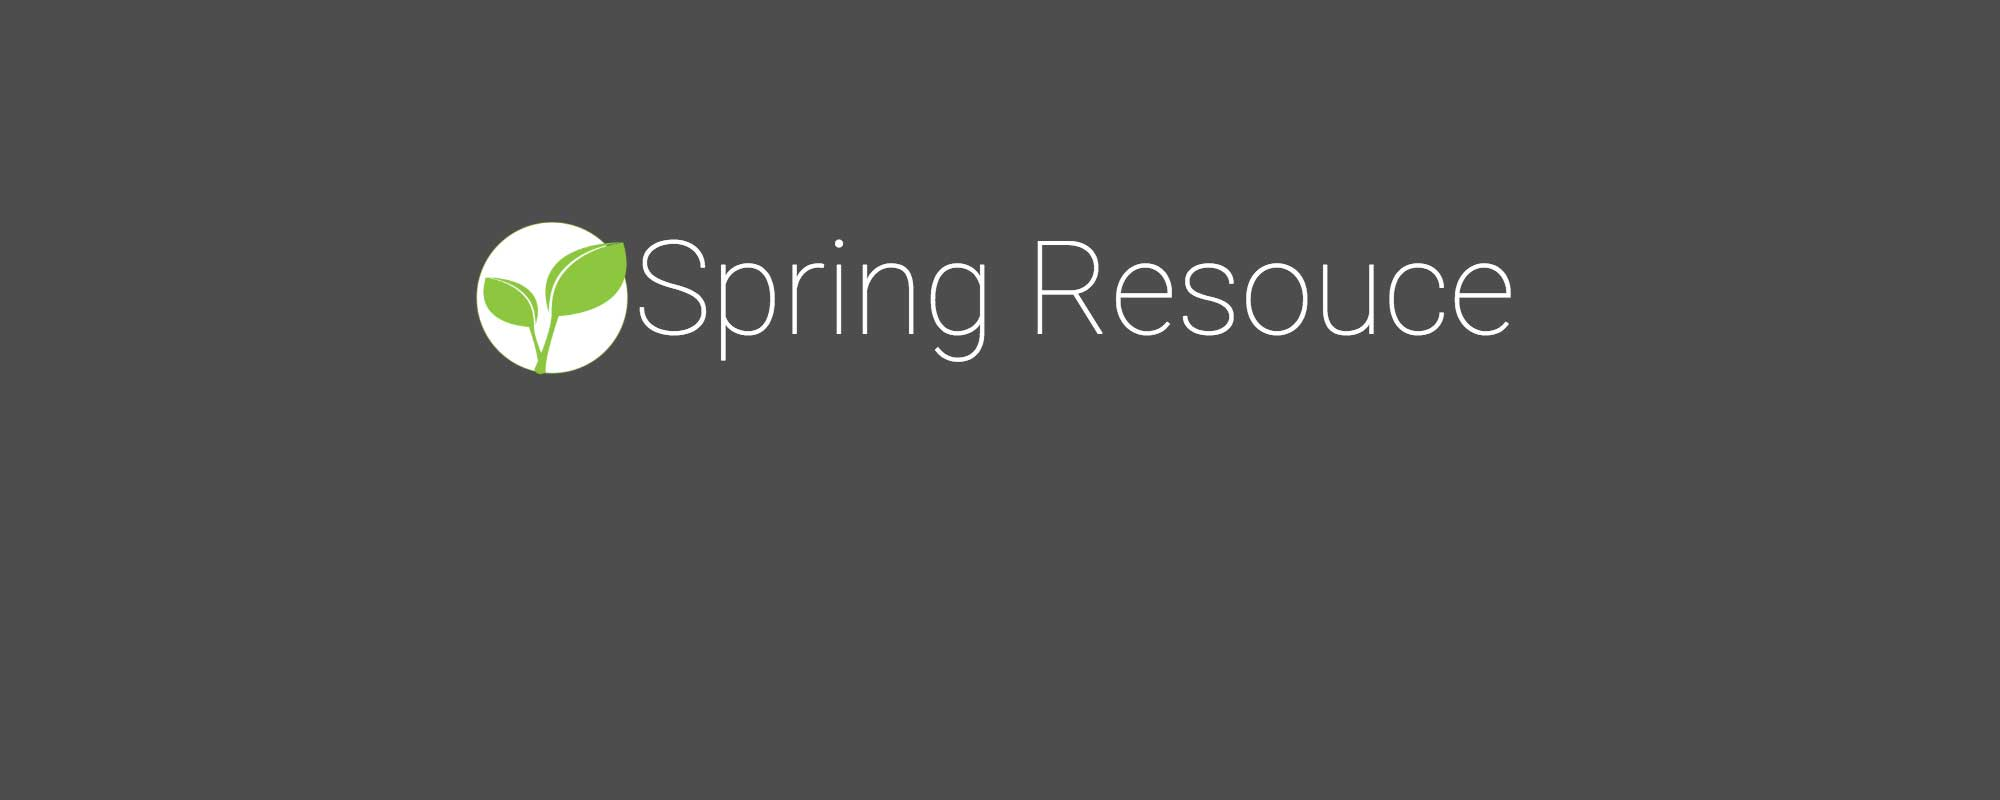 springResourceSplash-1